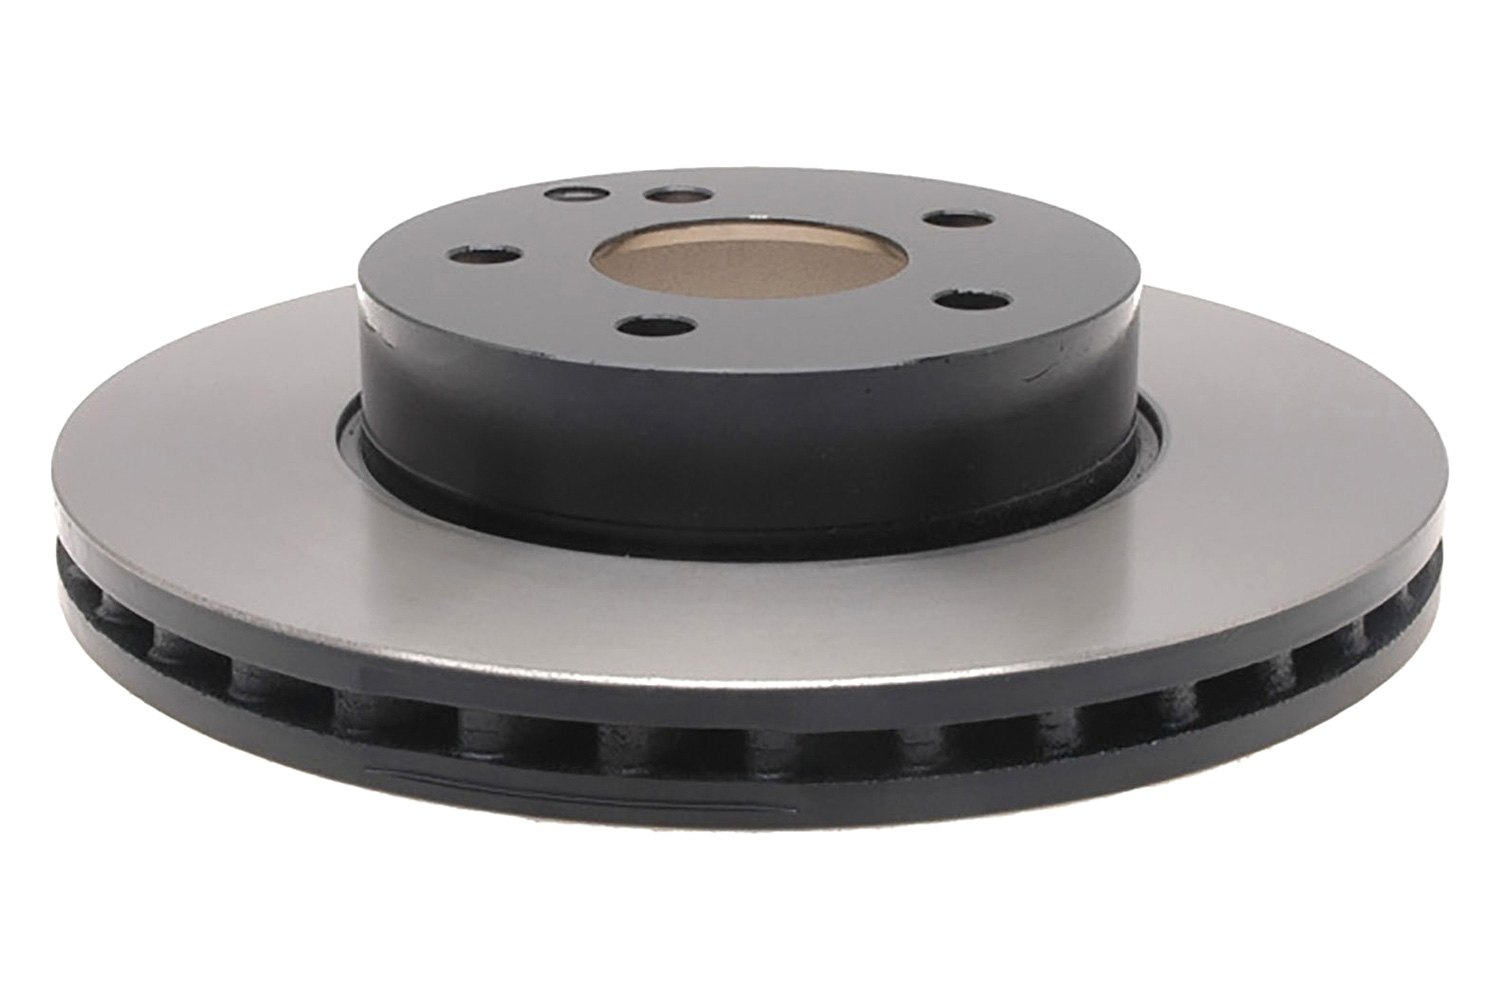 Acdelco mercedes c class 2008 2009 professional 1 for Mercedes benz c300 brake rotors